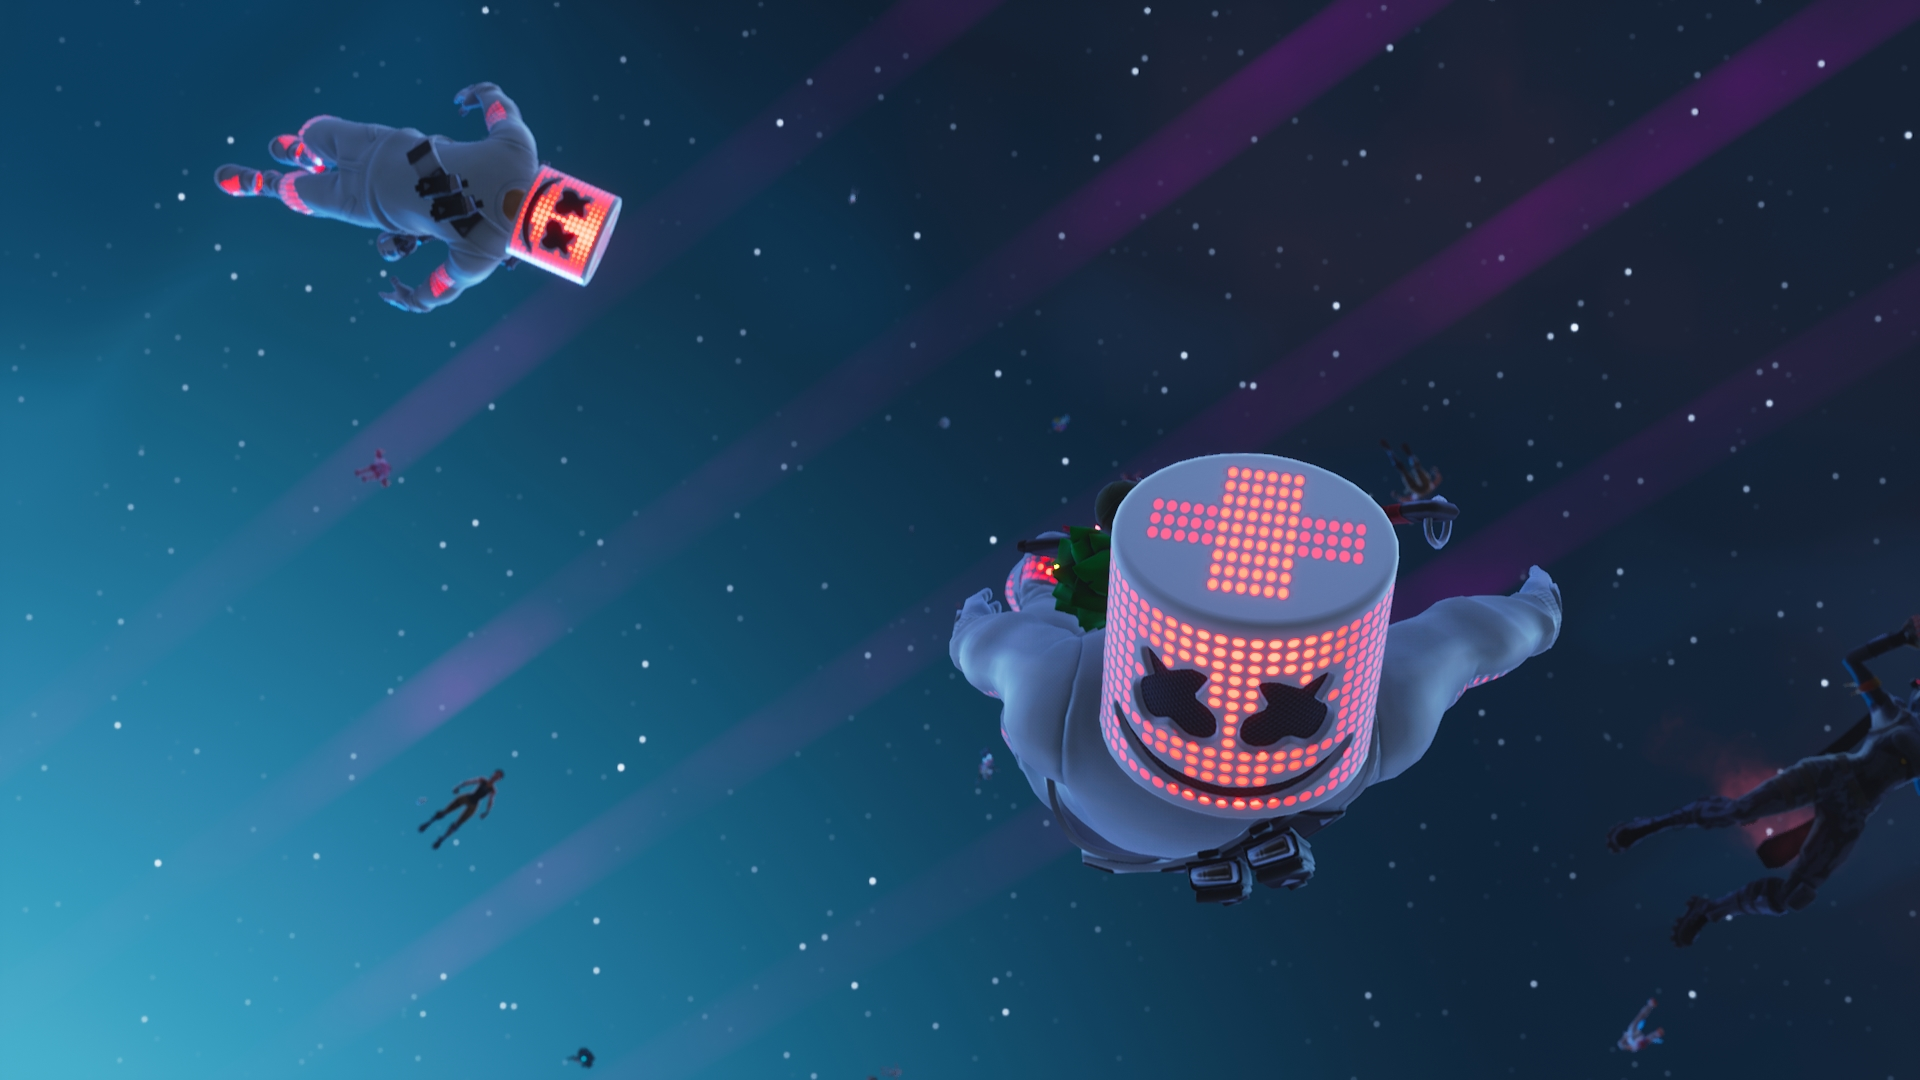 1920x1080 Marshmello Fortnite Laptop Full Hd 1080p Hd 4k Wallpapers Images Backgrounds Photos And Pictures